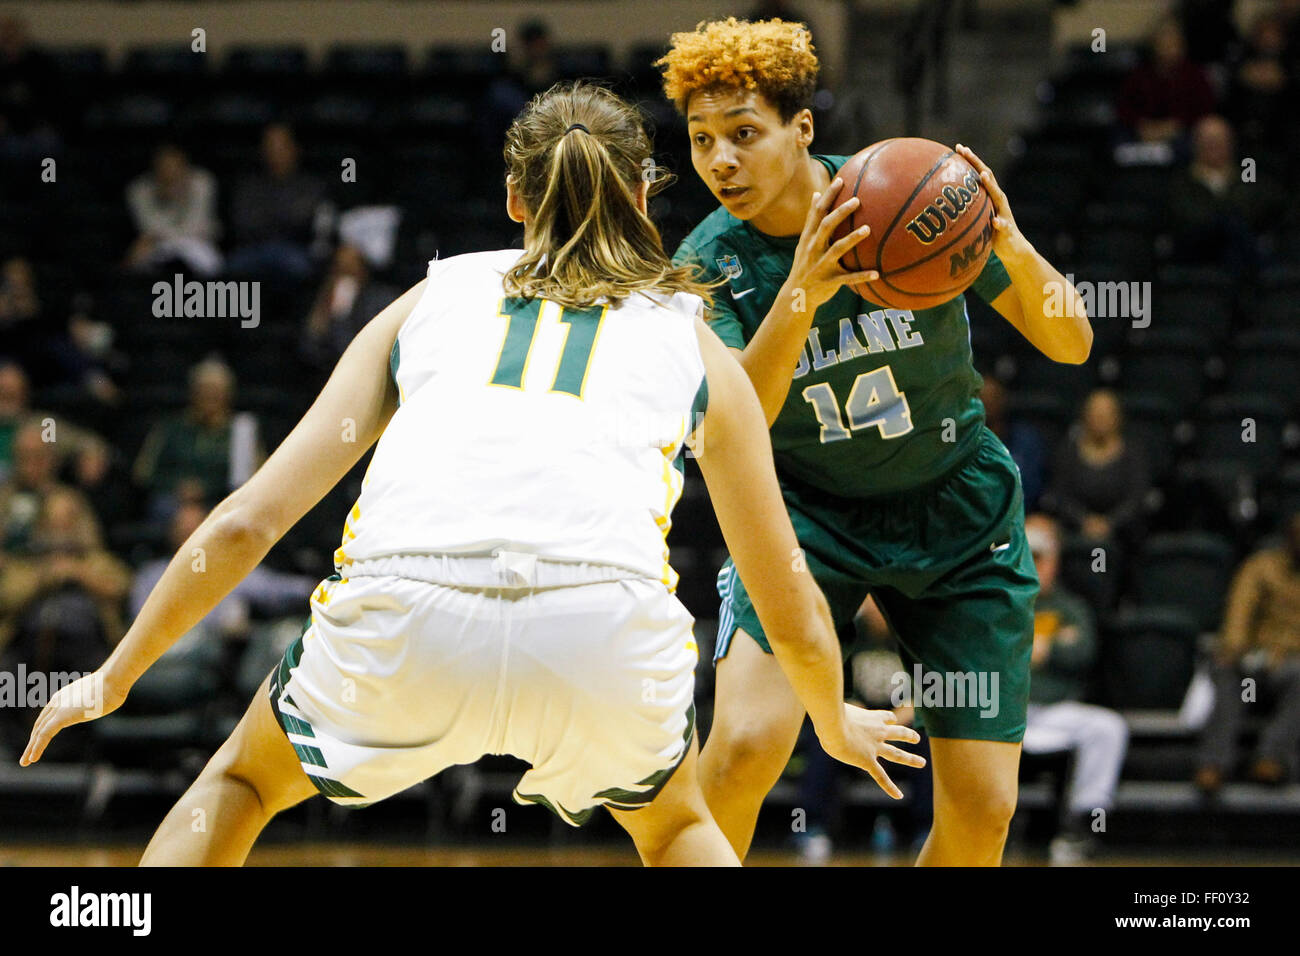 Tampa, Florida, USA. 9th Feb, 2016. WILL VRAGOVIC   Times.Tulane Green Wave guard Taylor Emery (14) looks to move - Stock Image